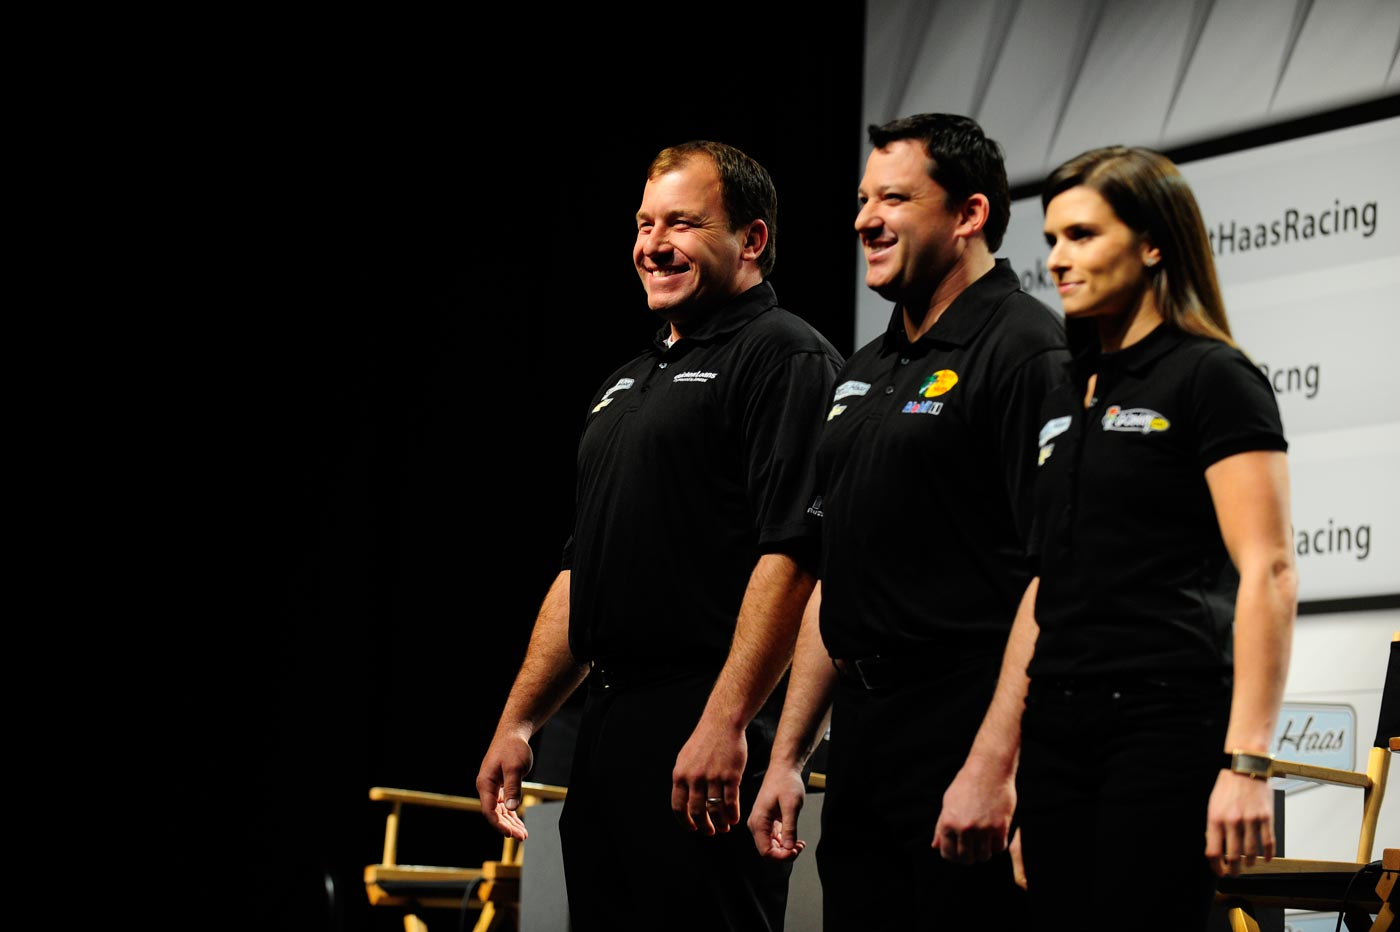 2013-Sprint-Media-Tour-Ryan-Newman-Tony-Stewart-Danica-Patrick